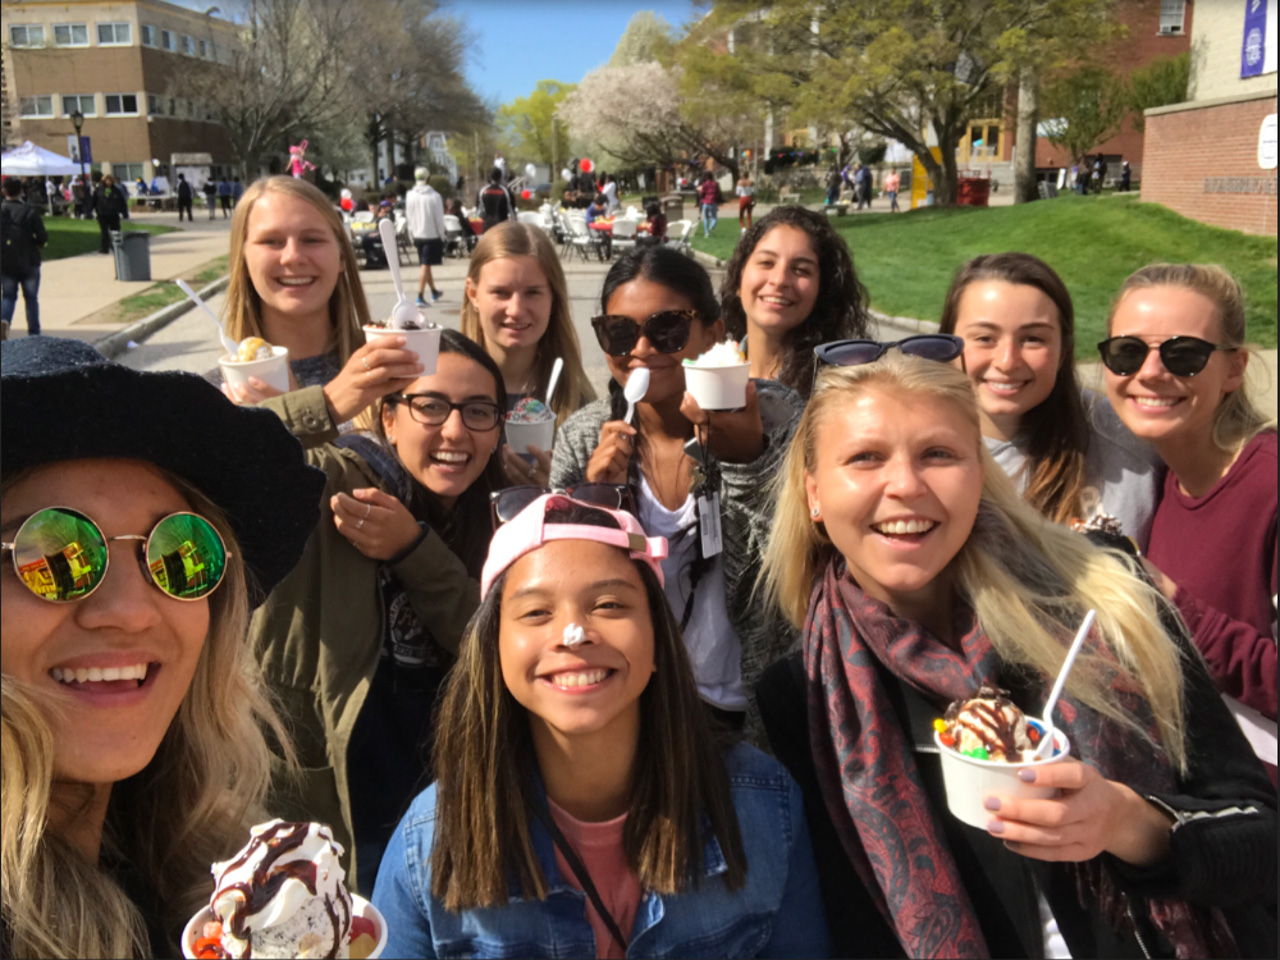 Students Having Fun at Event with Ice Cream